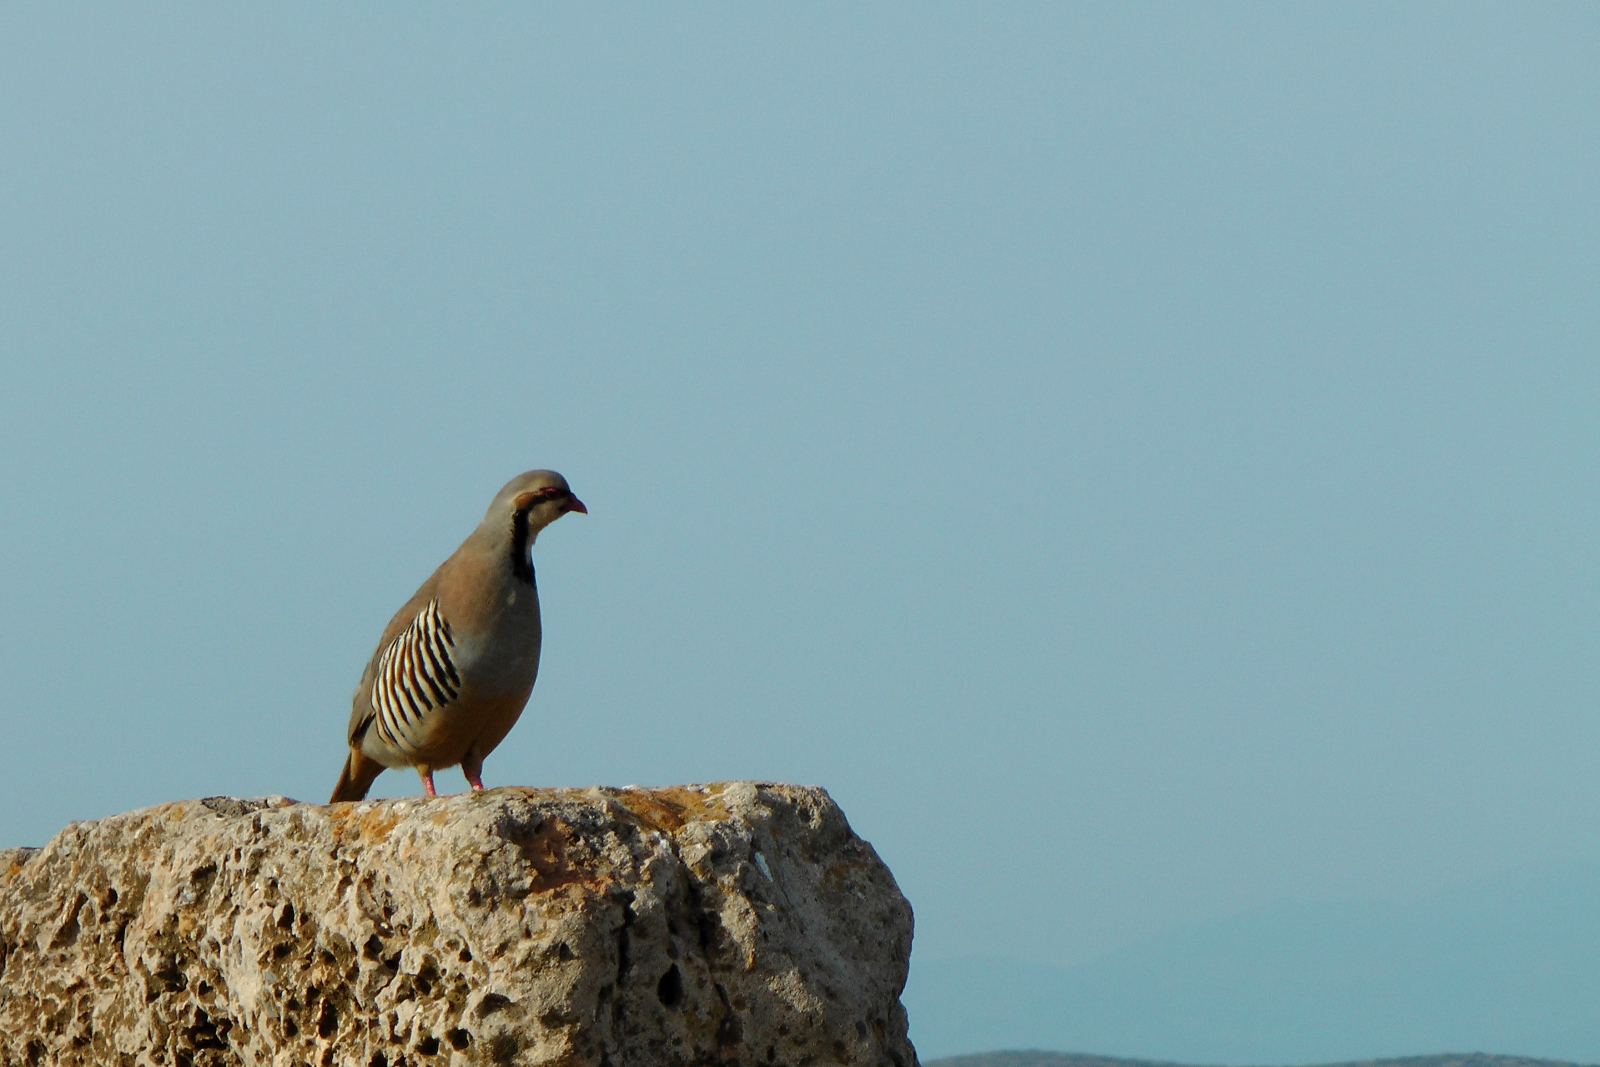 Wild Grouse right by the temple of Poseidon_Sounio Cruise